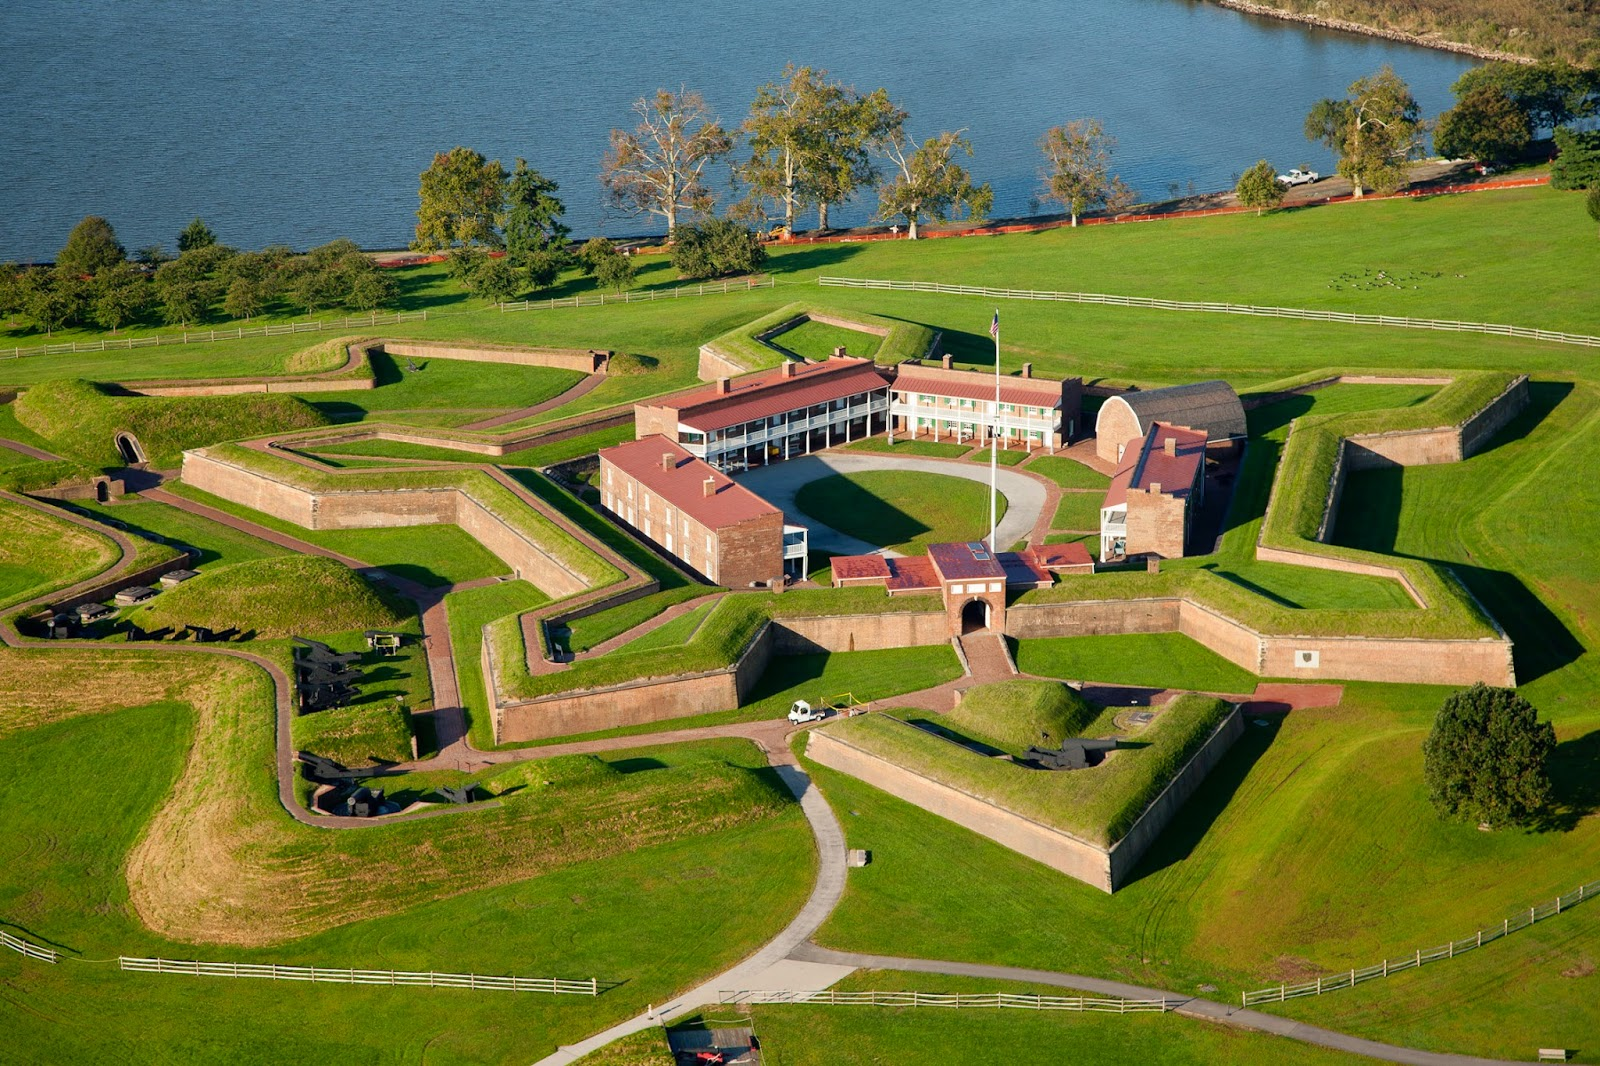 http://en.wikipedia.org/wiki/Fort_McHenry